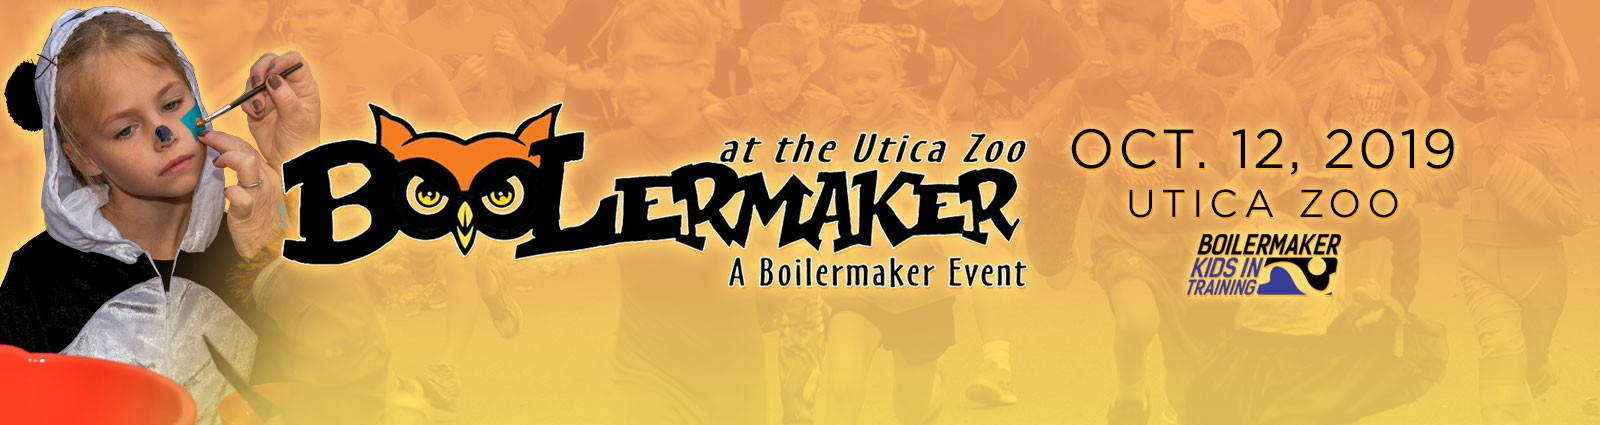 Boolermaker at the Utica Zoo: October 12, 2019